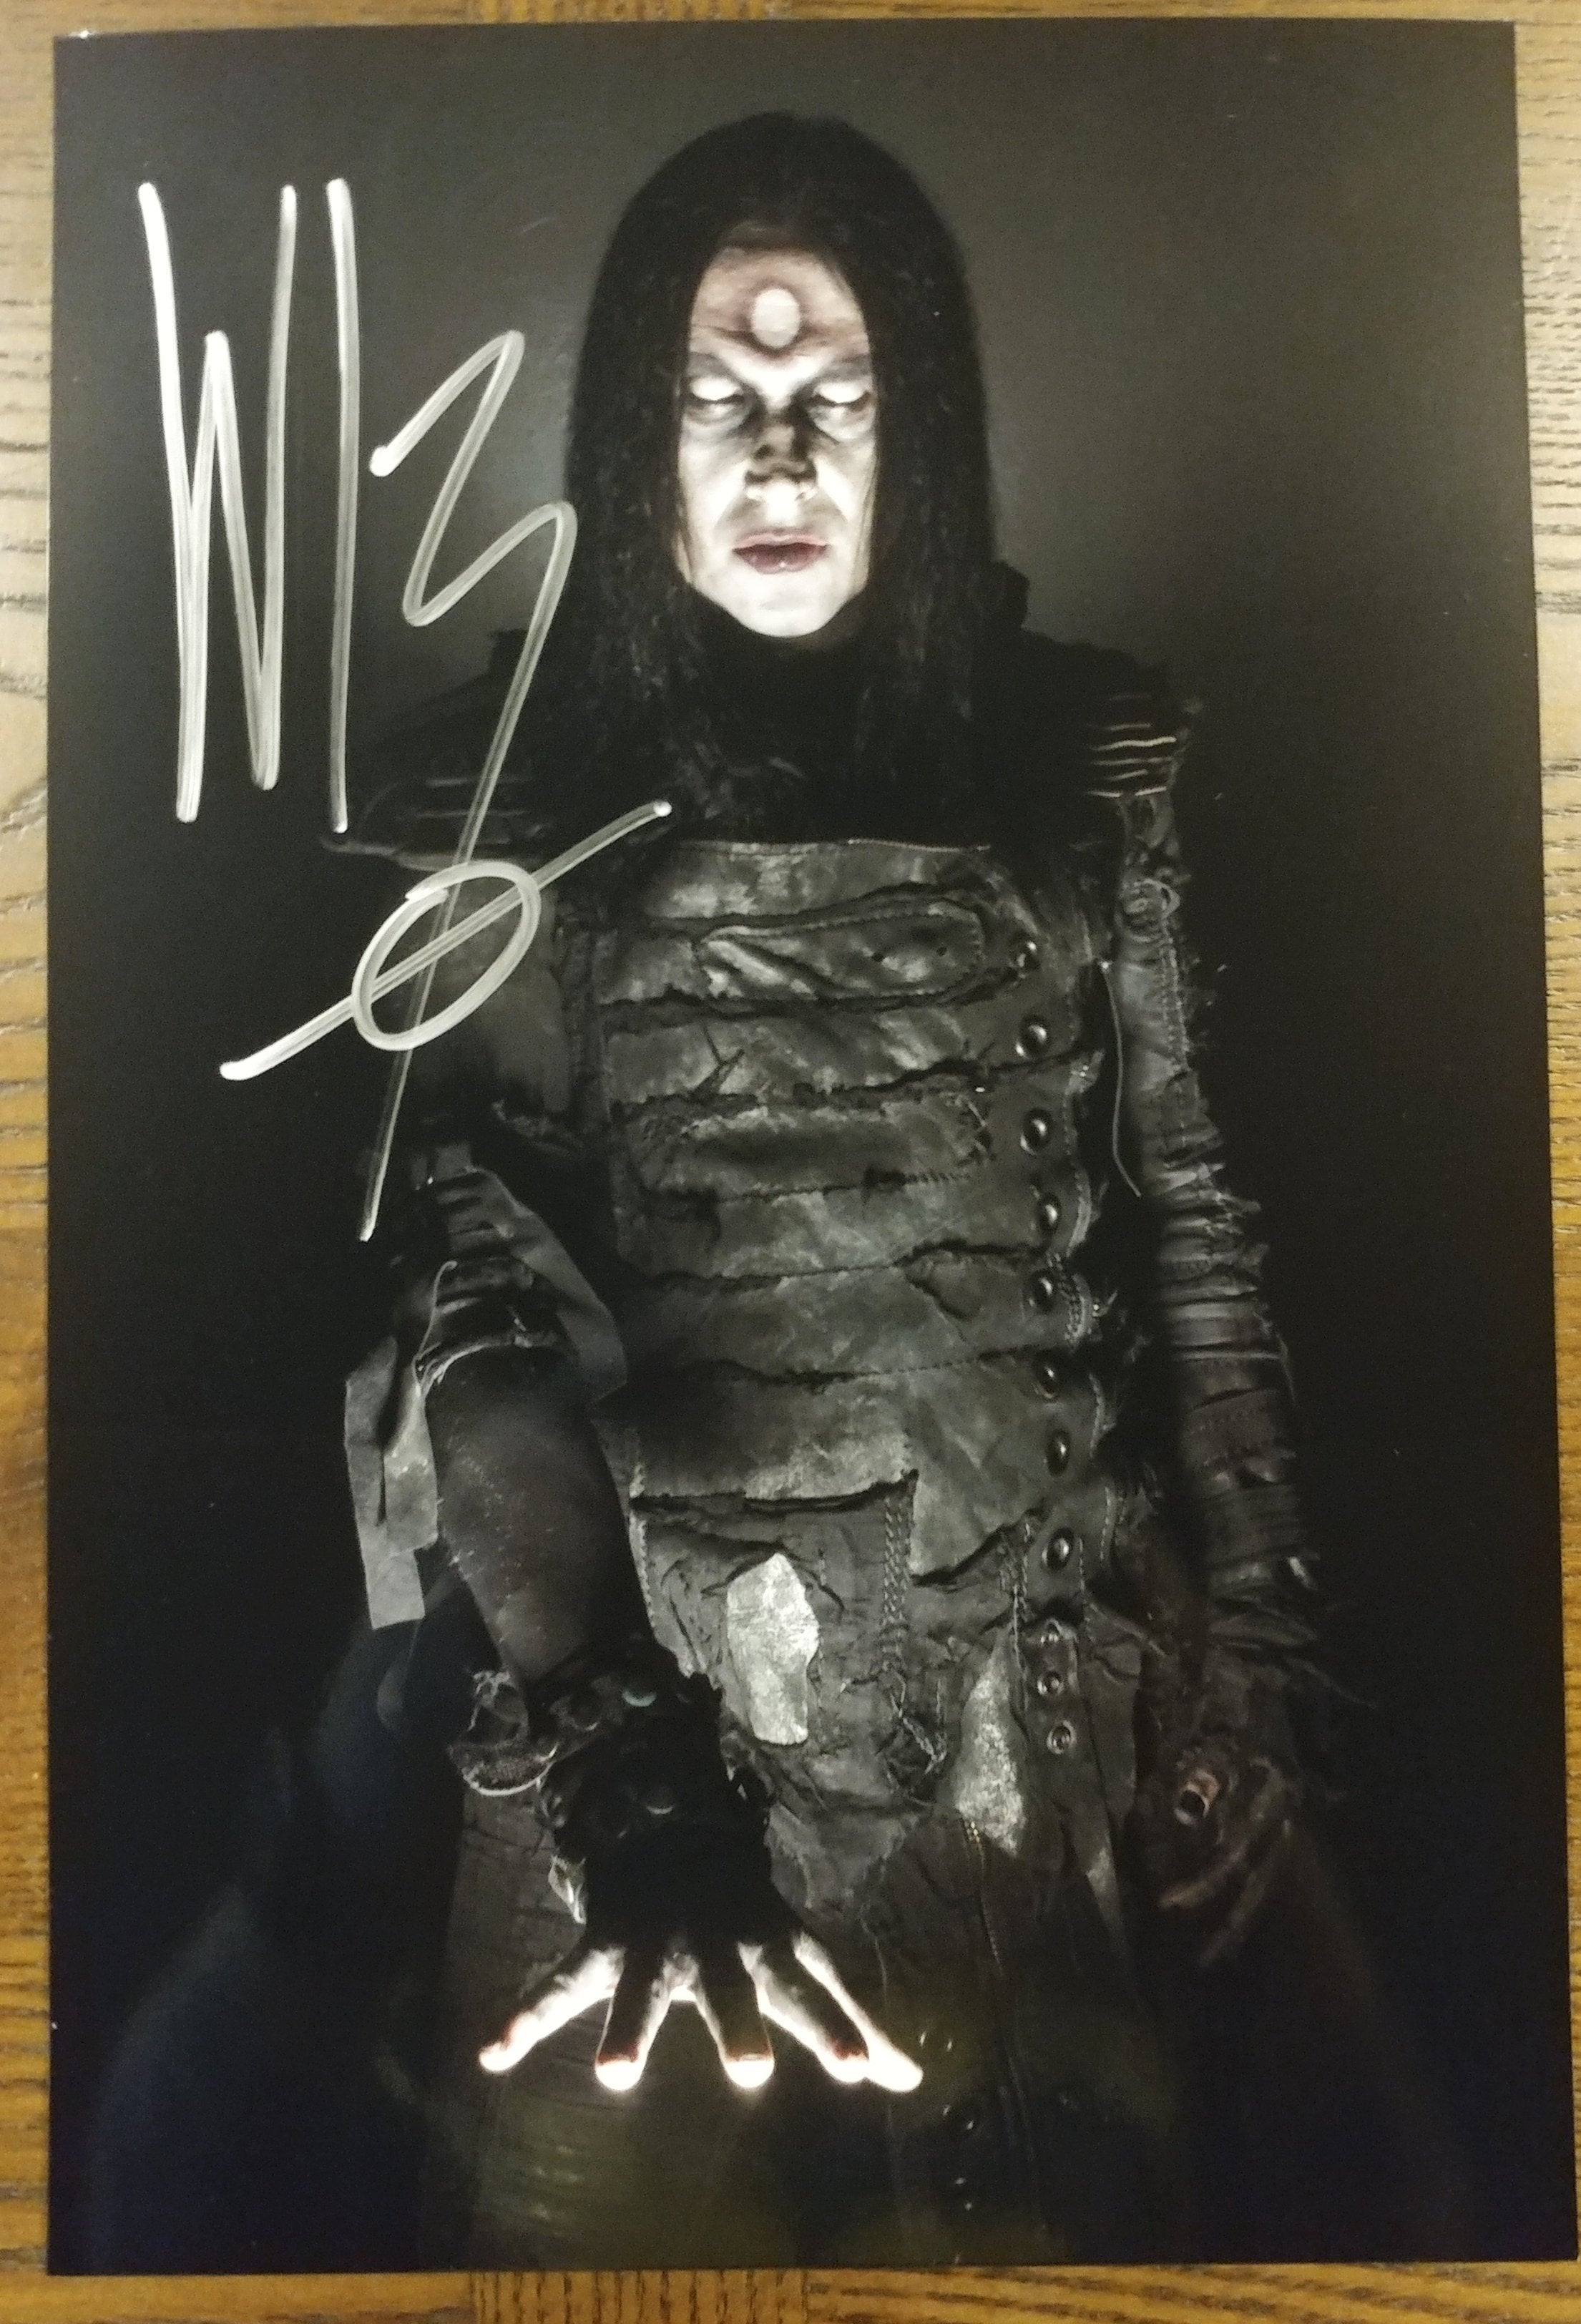 Wednesday 13 - Omen - signed limited edition 8x12 metallic print (5 available)